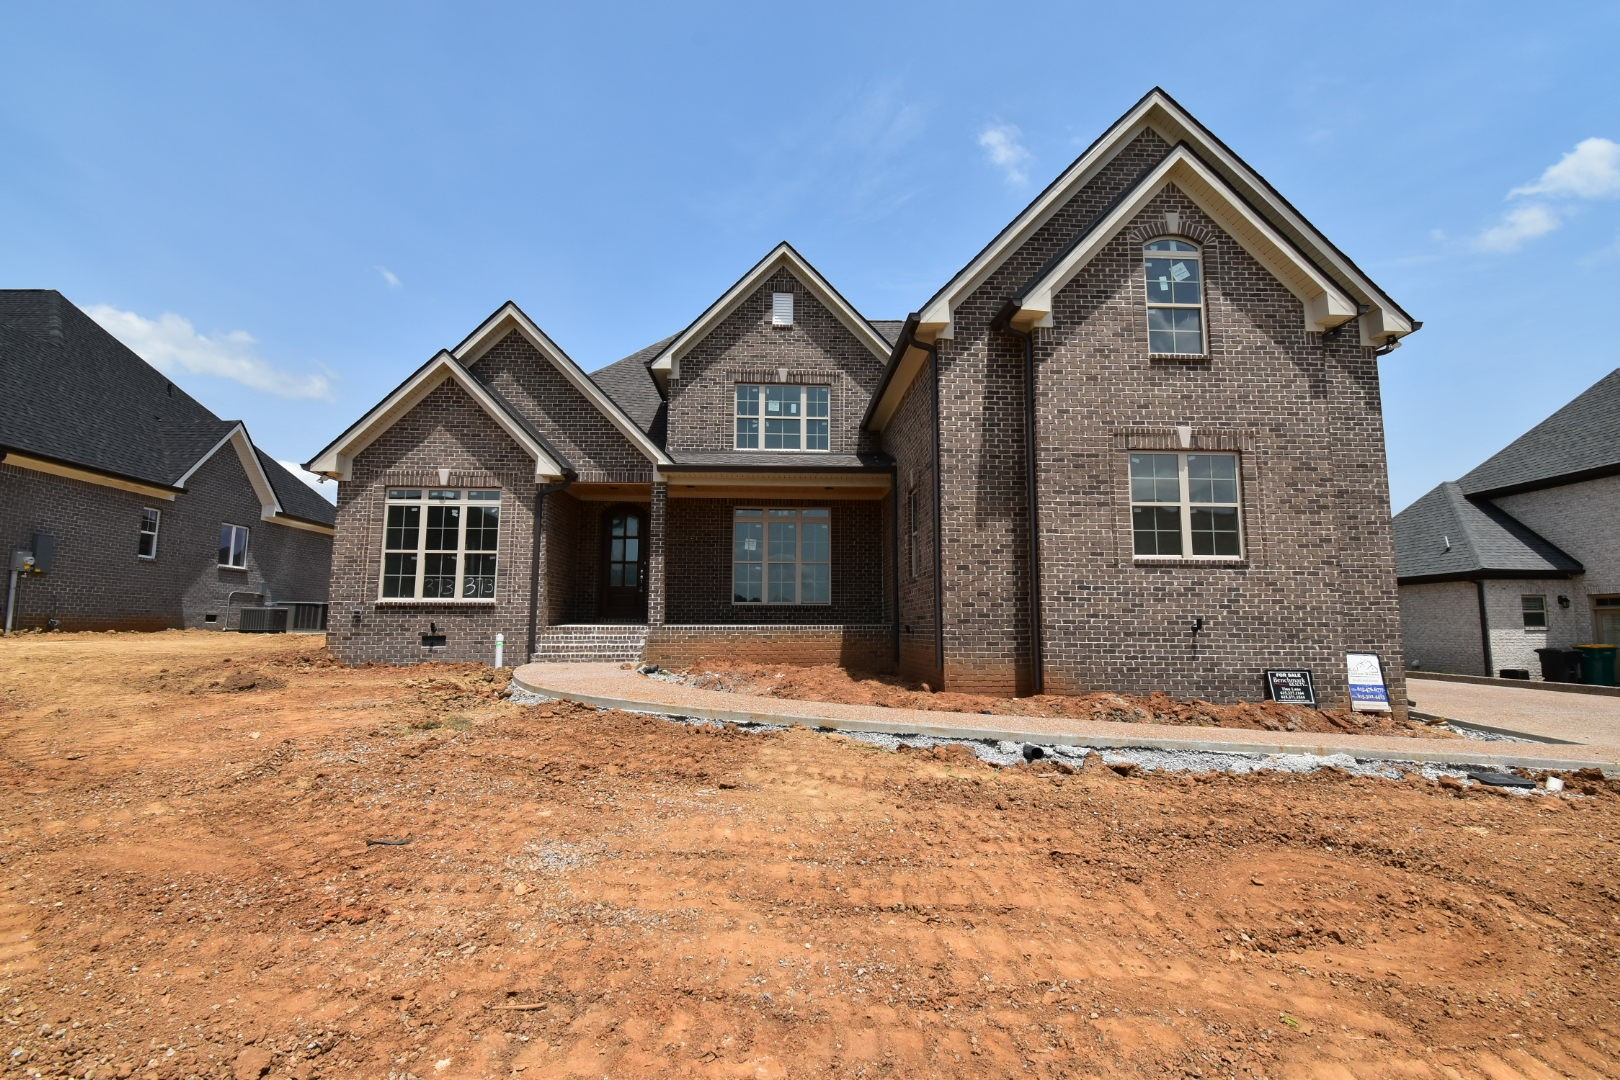 4014 Canberra Dr (373), Spring Hill, Tennessee